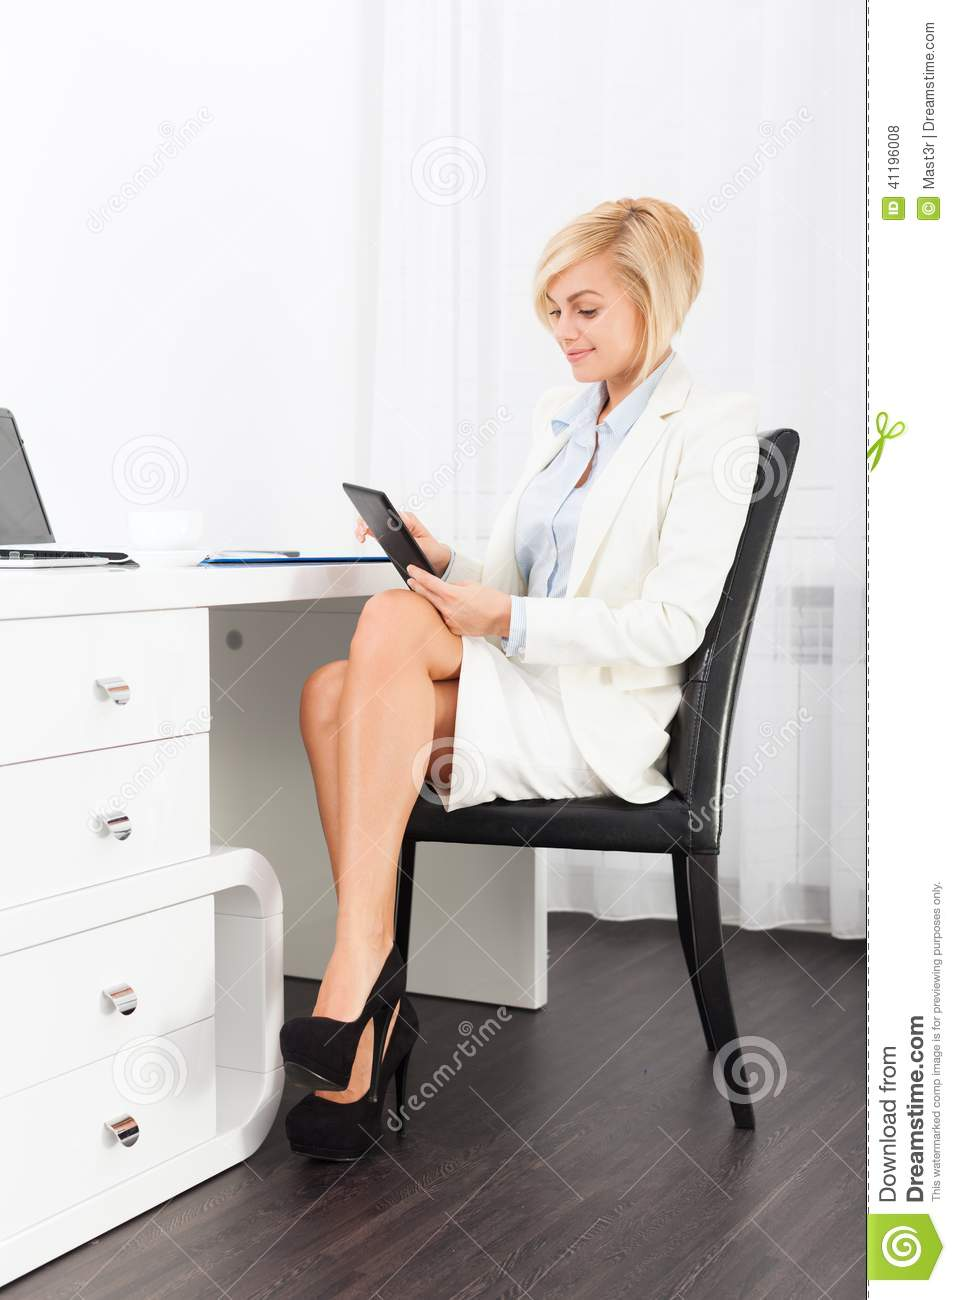 xl desk chair lightweight outdoor folding chairs business woman using tablet sitting office stock photo - image of legs, communication: 41196008